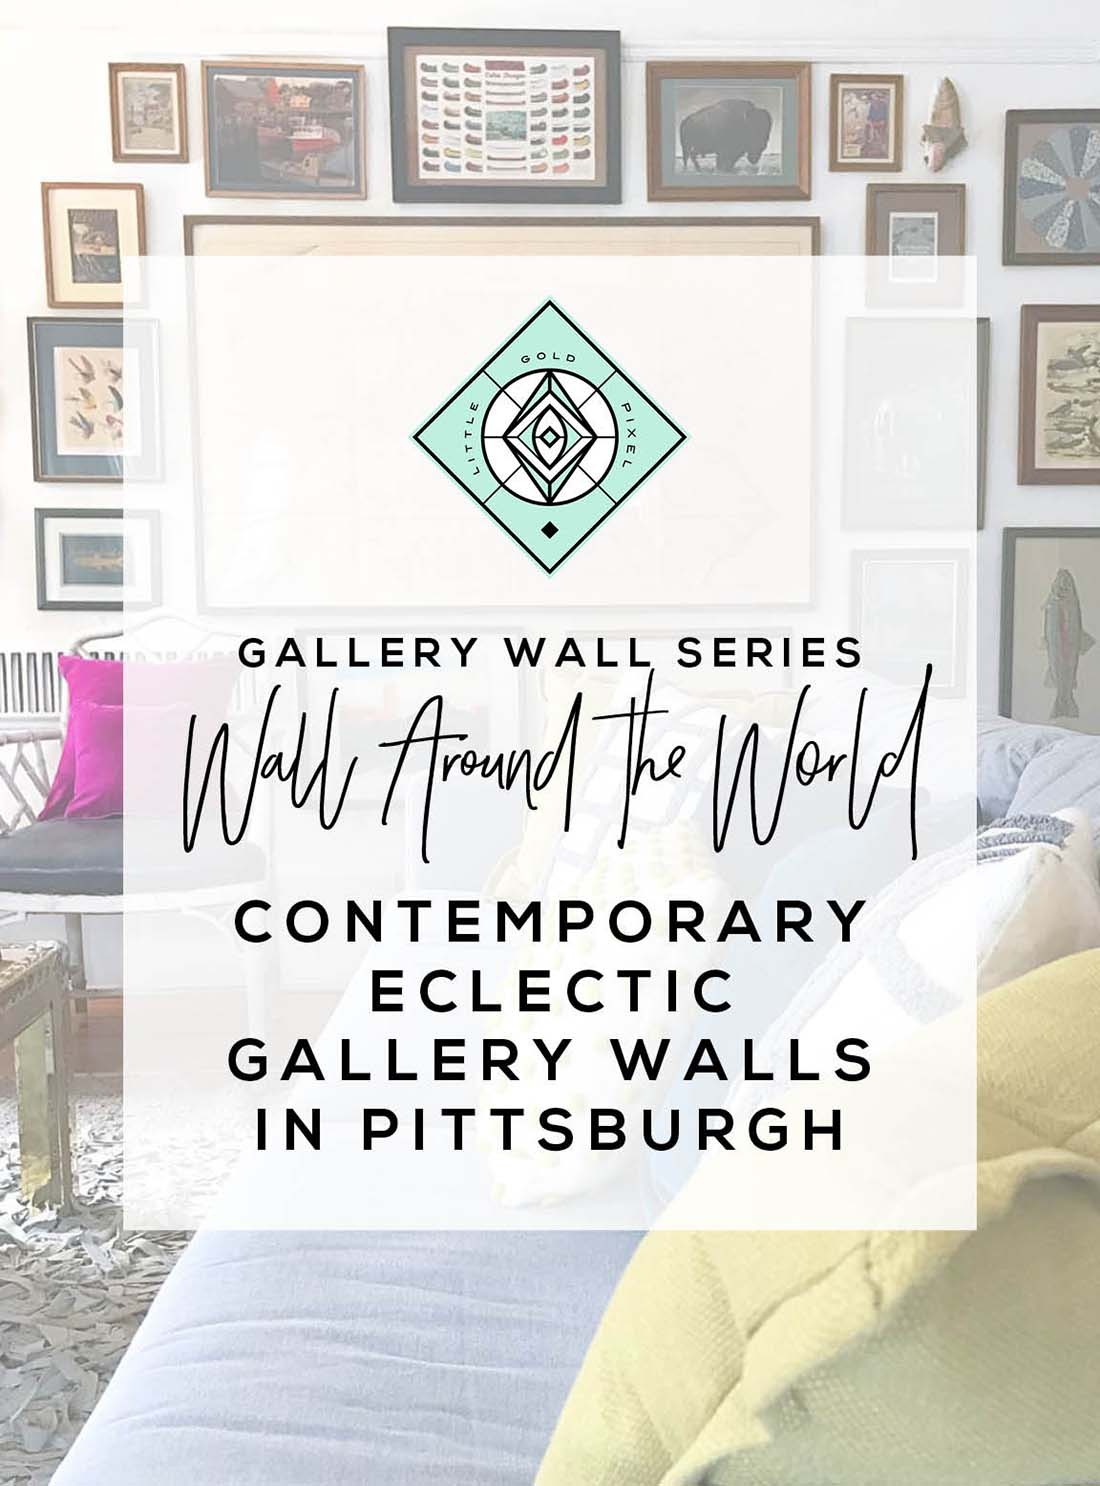 Wall Around the World: A Gallery Wall Series by Little Gold Pixel •Part 3: Contemporary Eclectic Gallery Wall in Pittsburgh • All photos ©Erin/freshzen.org